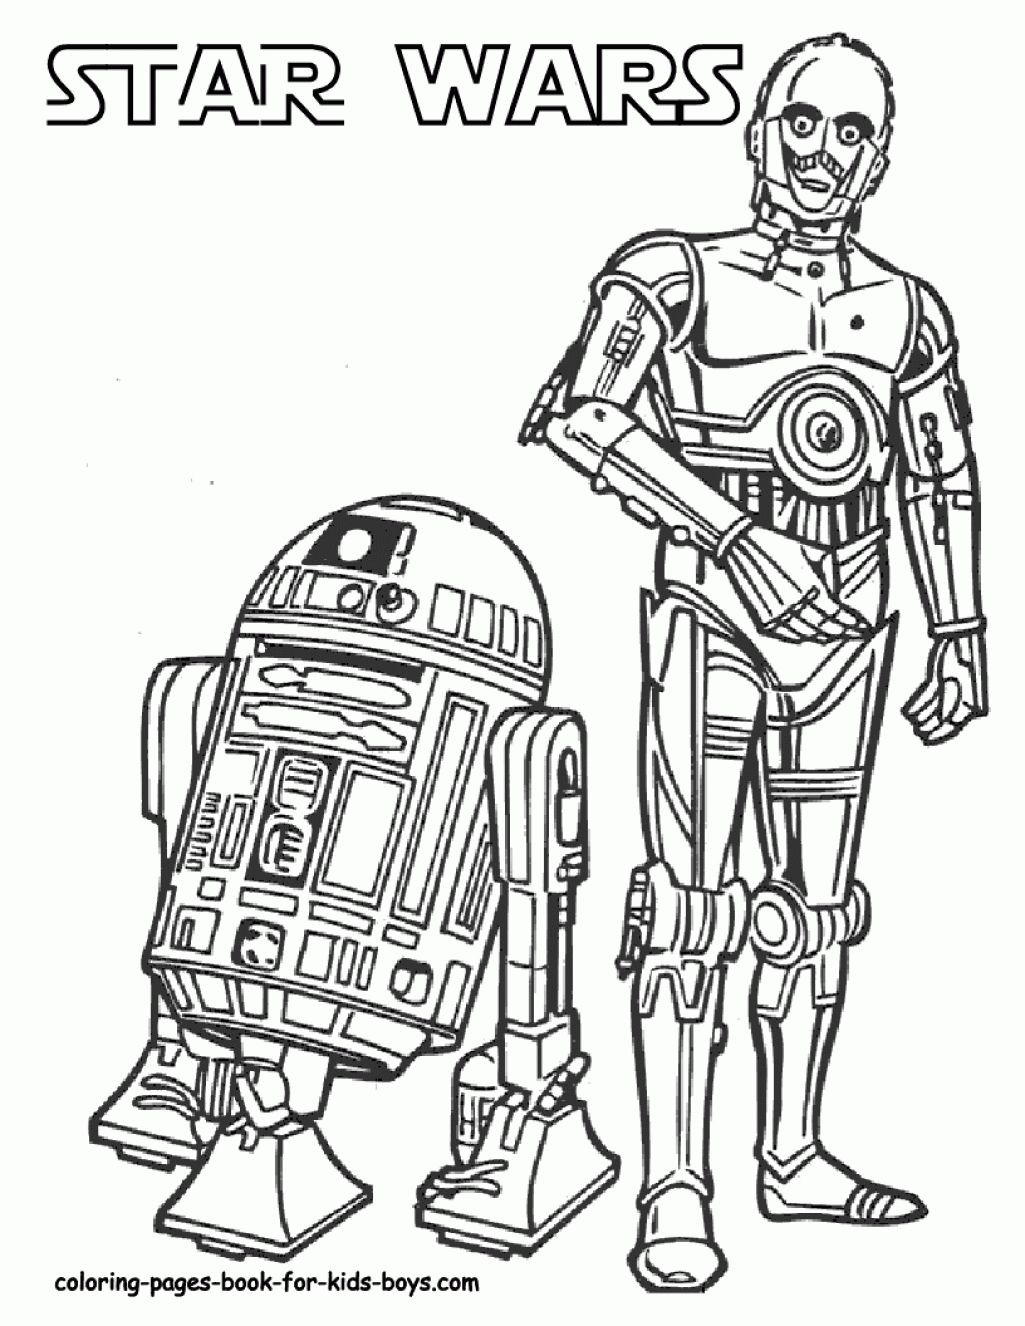 related to lego star wars coloring page jedi coloring pages ...